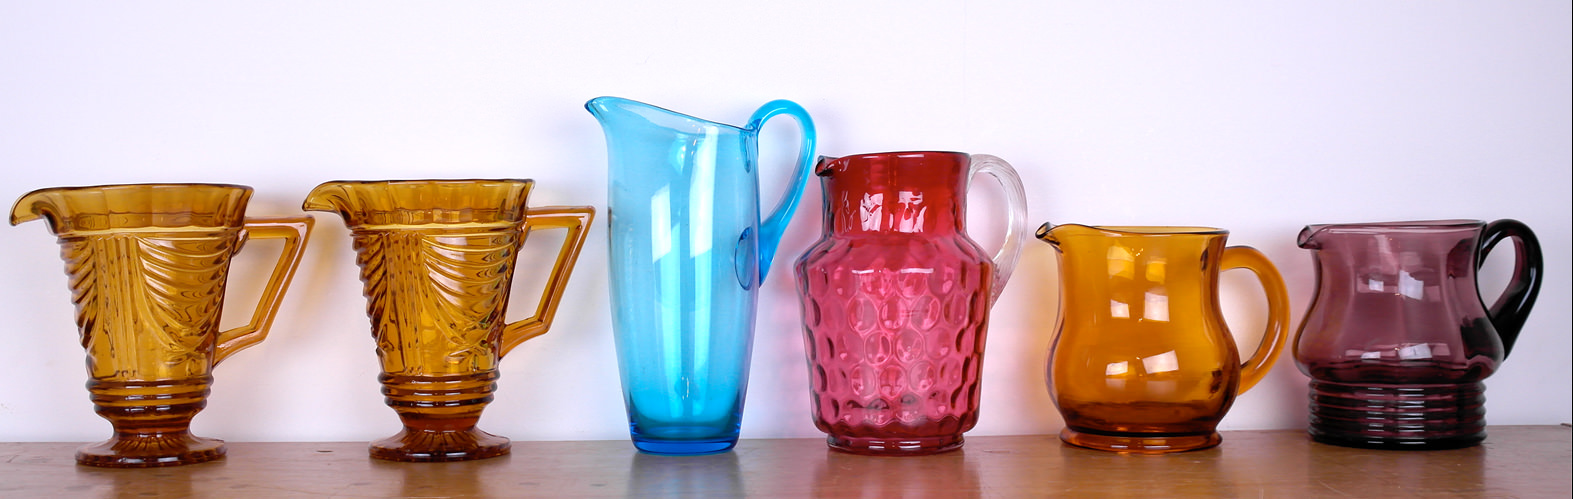 Vintage amber, cranberry & amethyst glass jugs